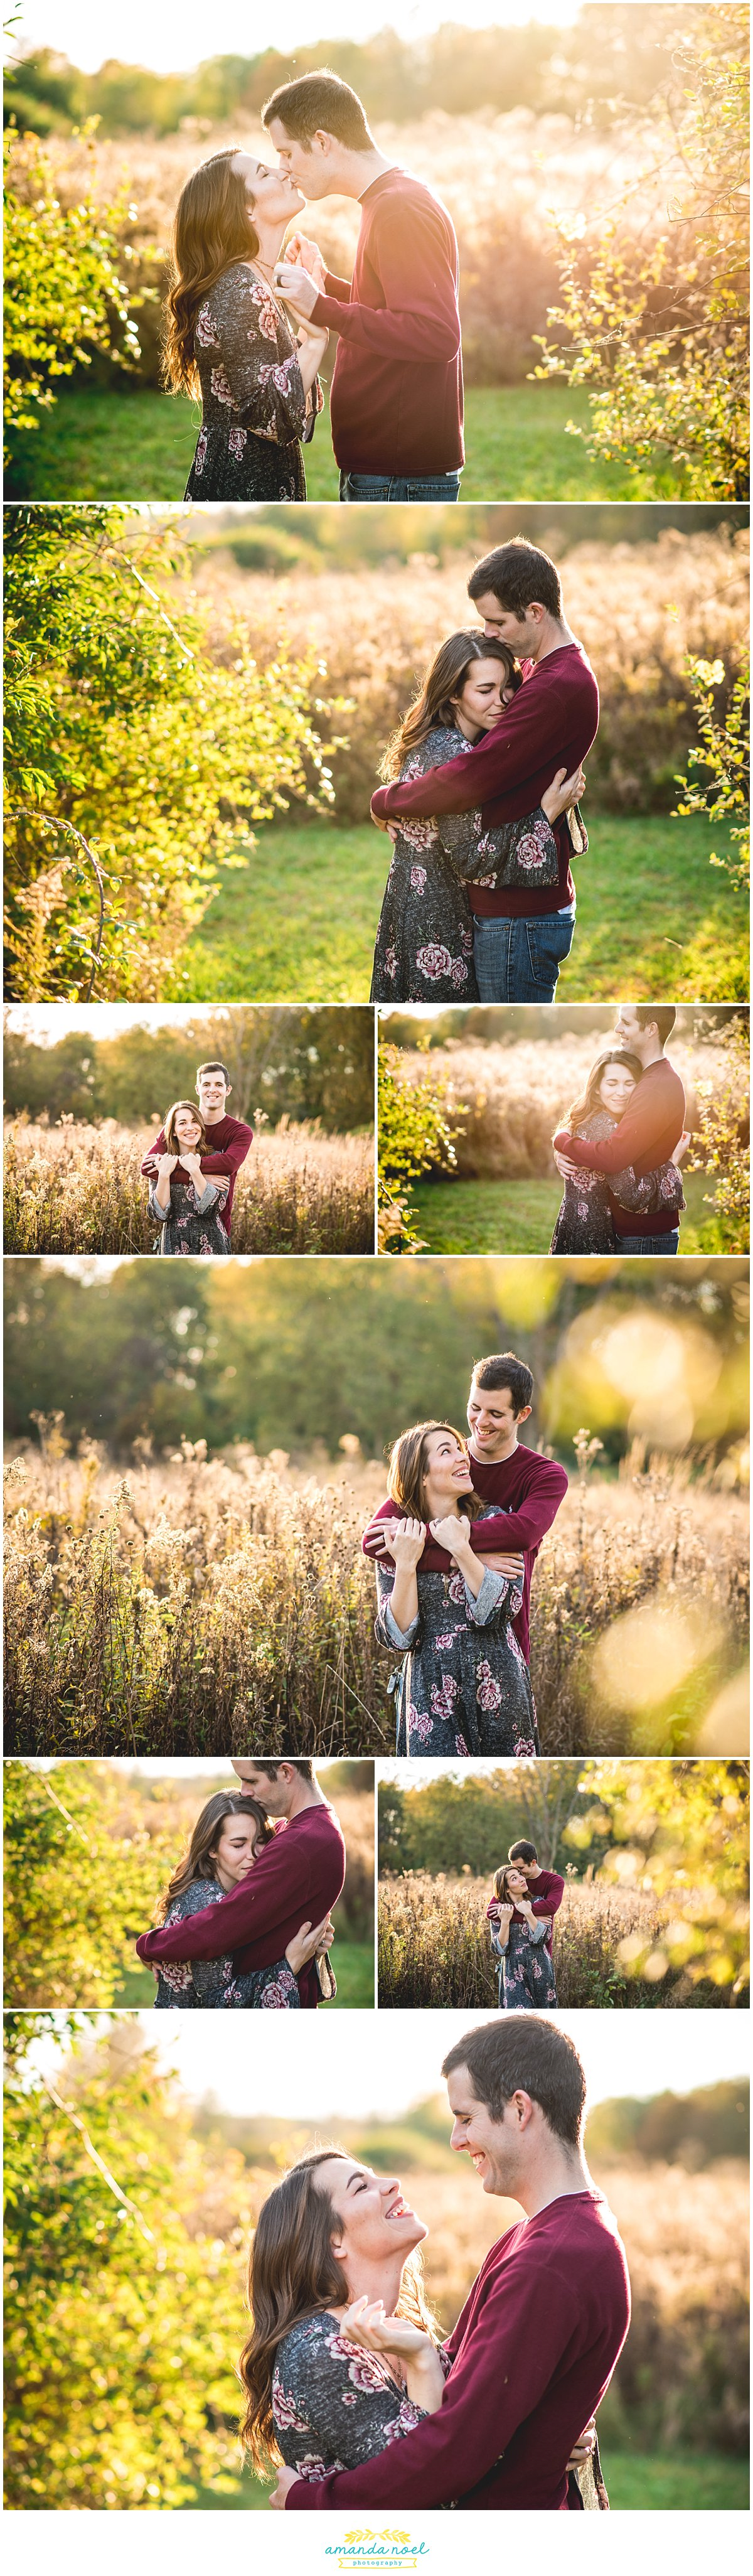 Columbus-Ohio-emotive-couple-photographer-romantic-session-in-field